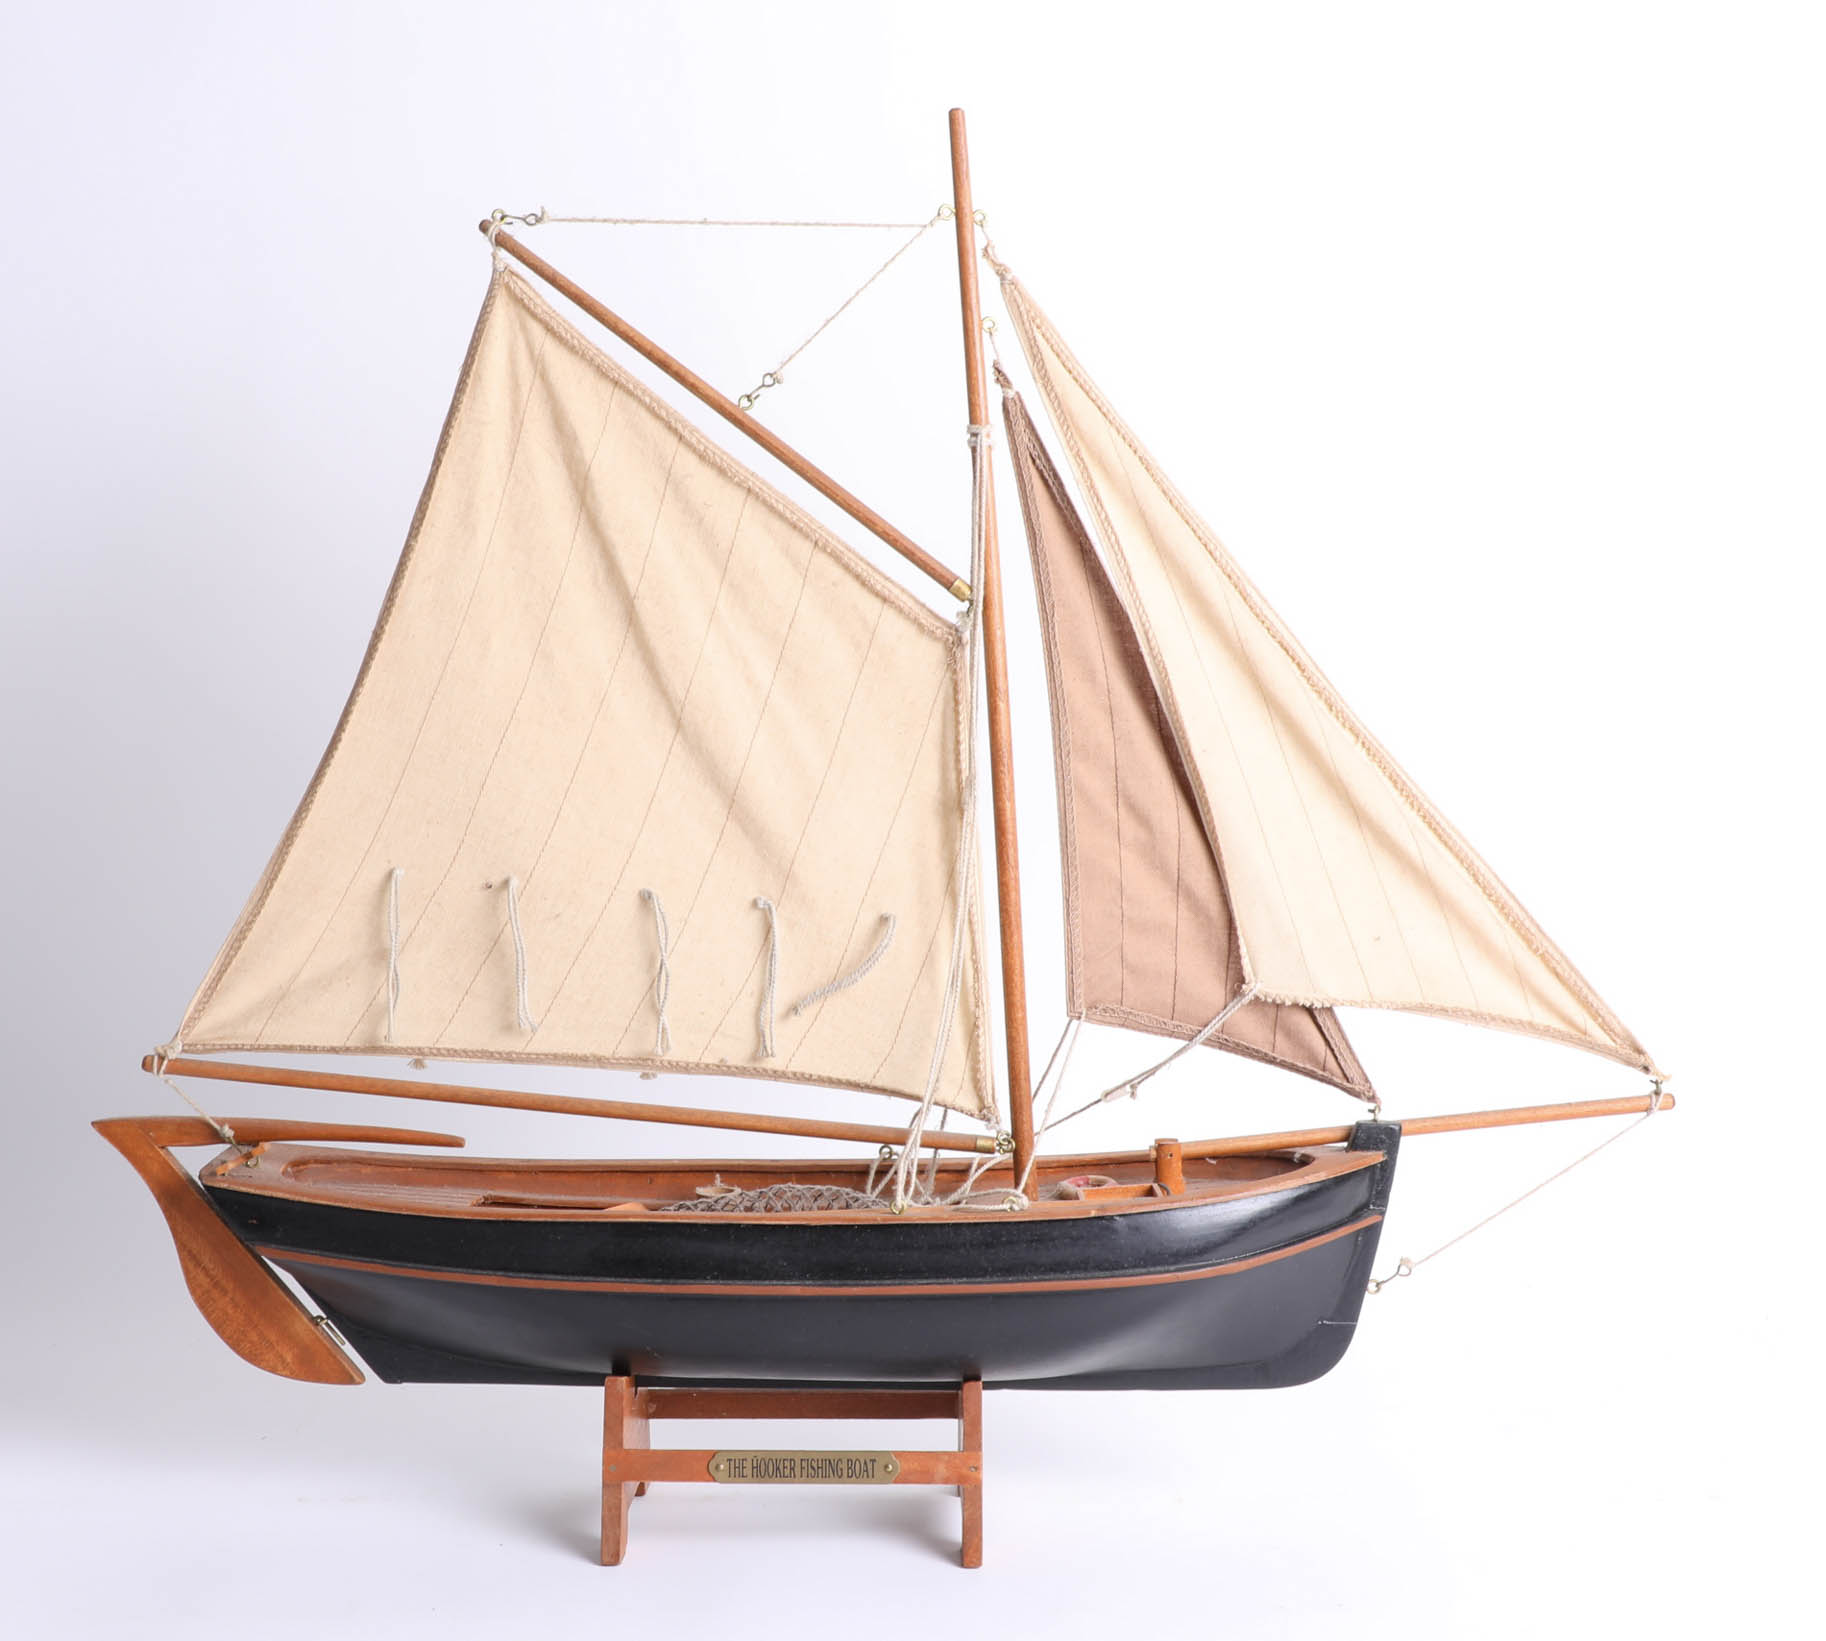 A wooden model of the 'The Hooker' Fishing Boat.